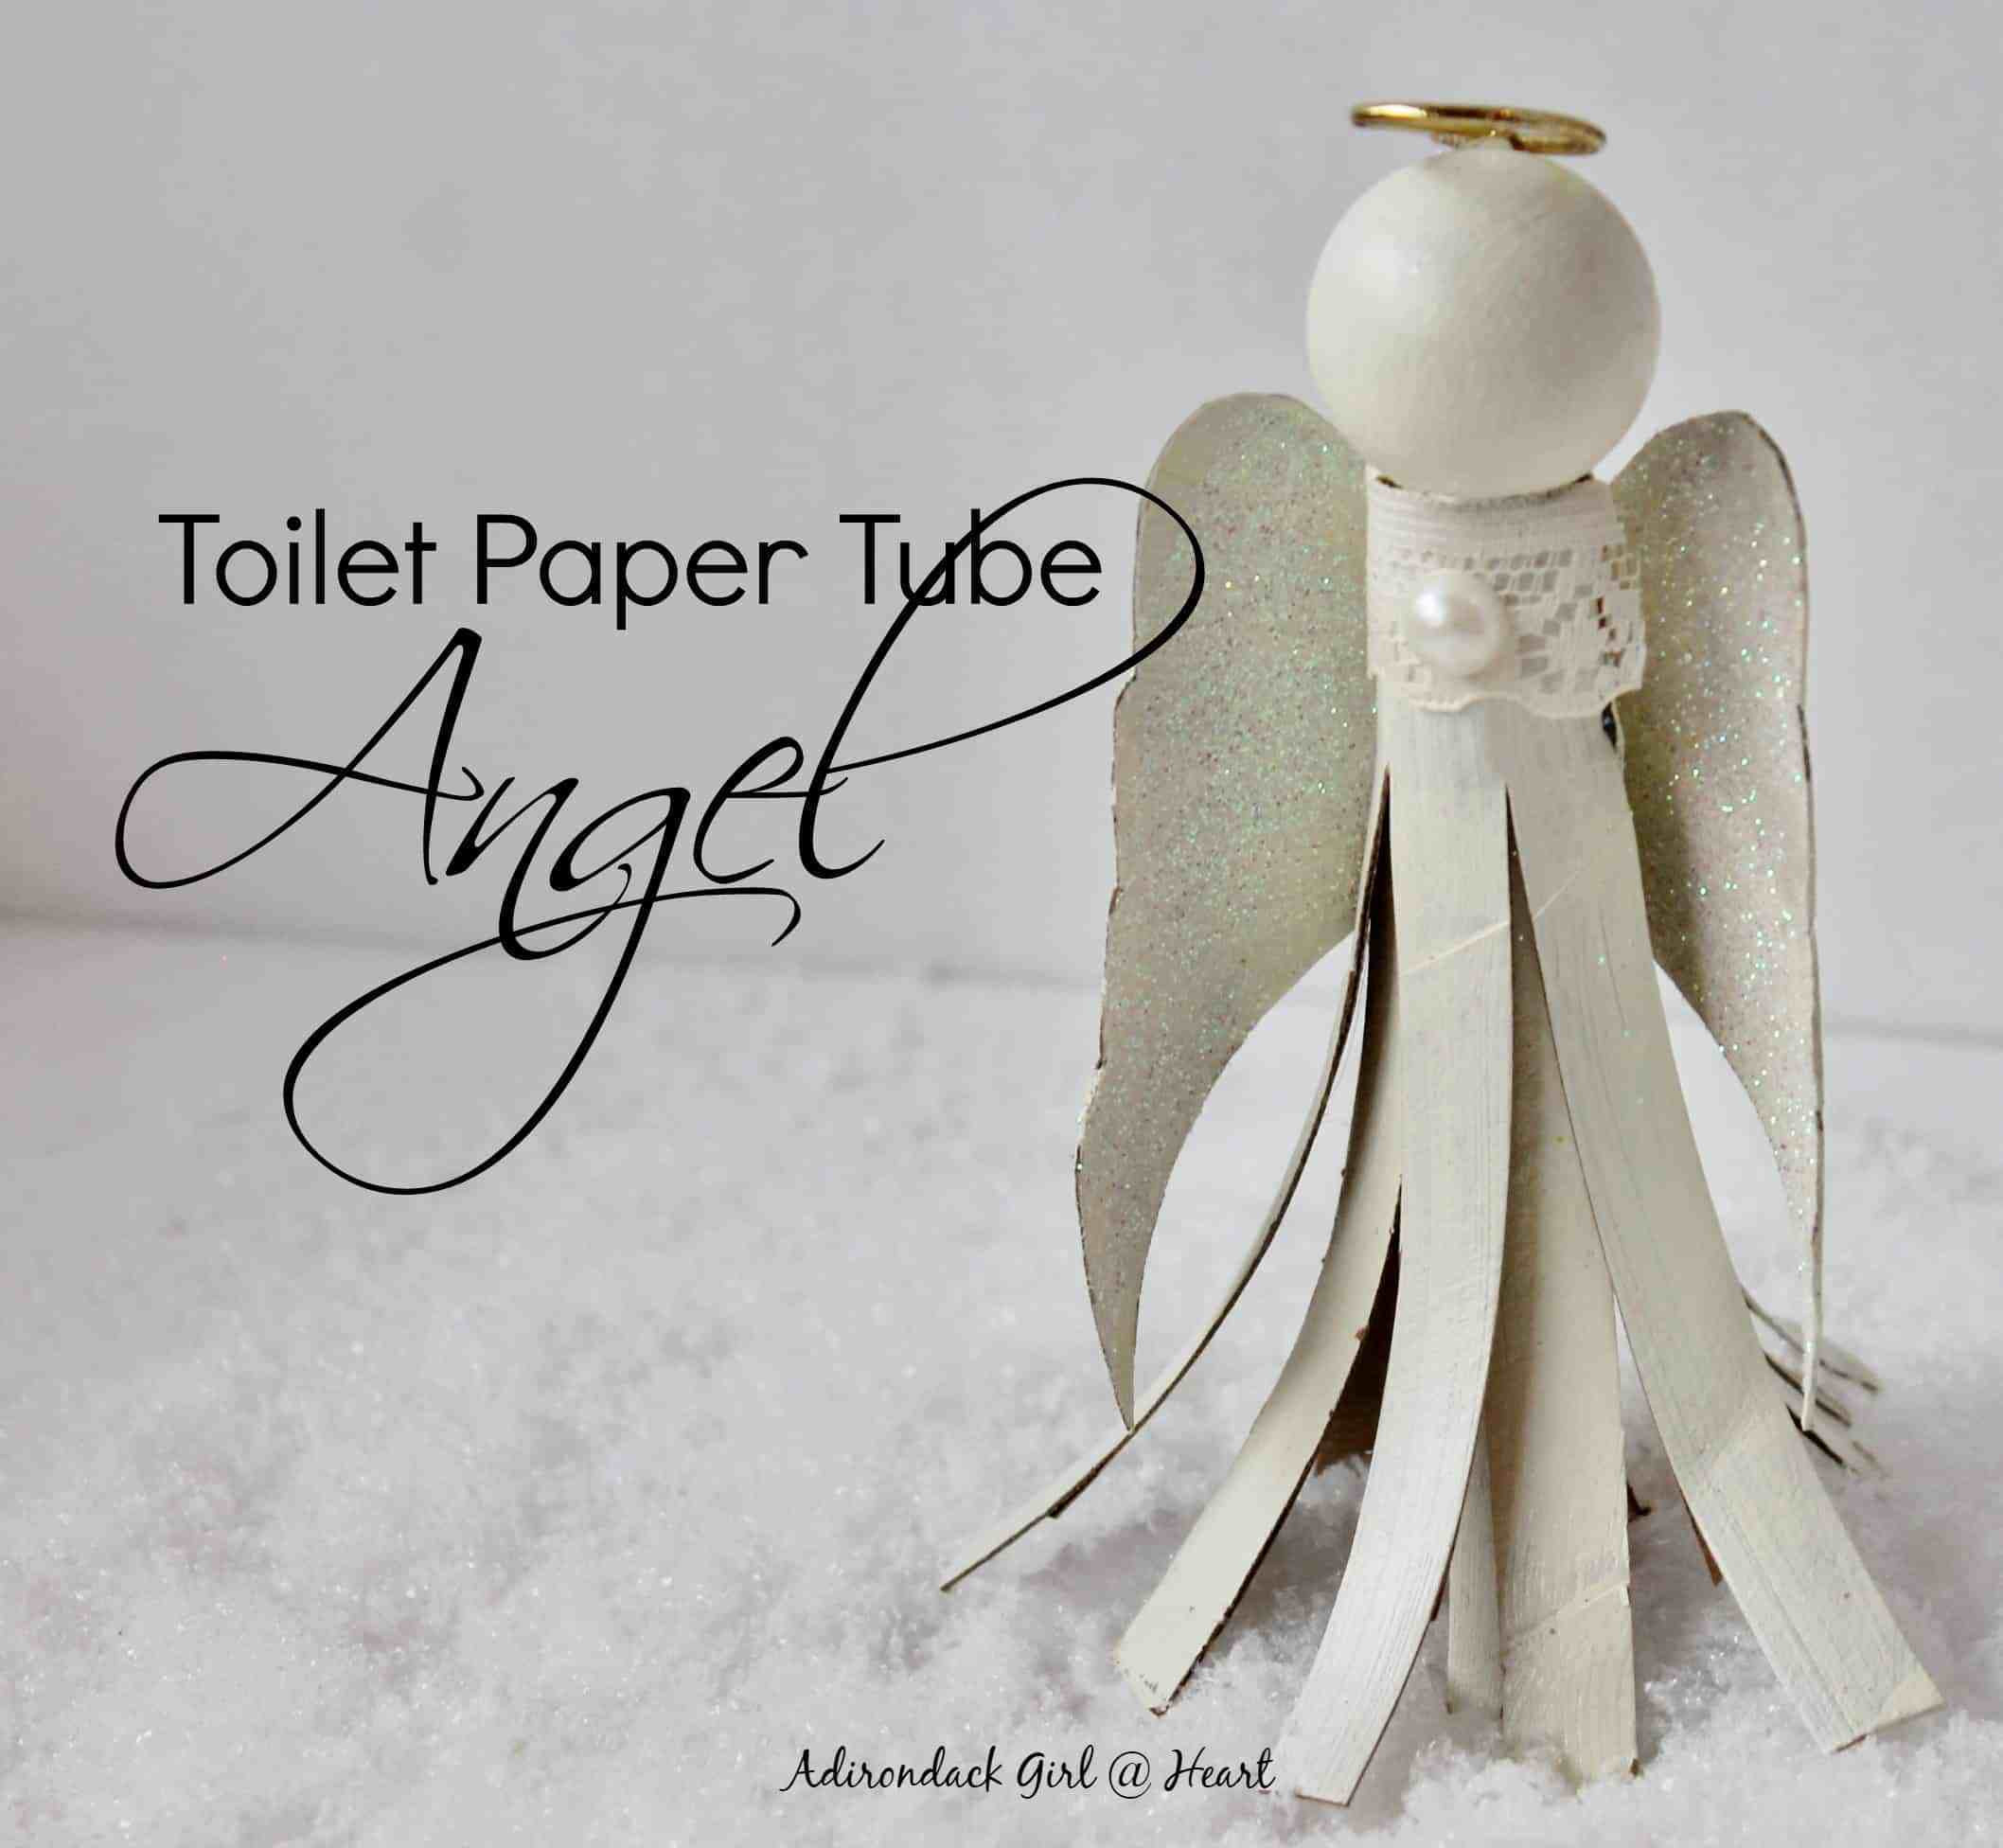 Toilet Paper Tube Christmas Crafts  9 Last Minute Simple & Thrifty Christmas Ornaments